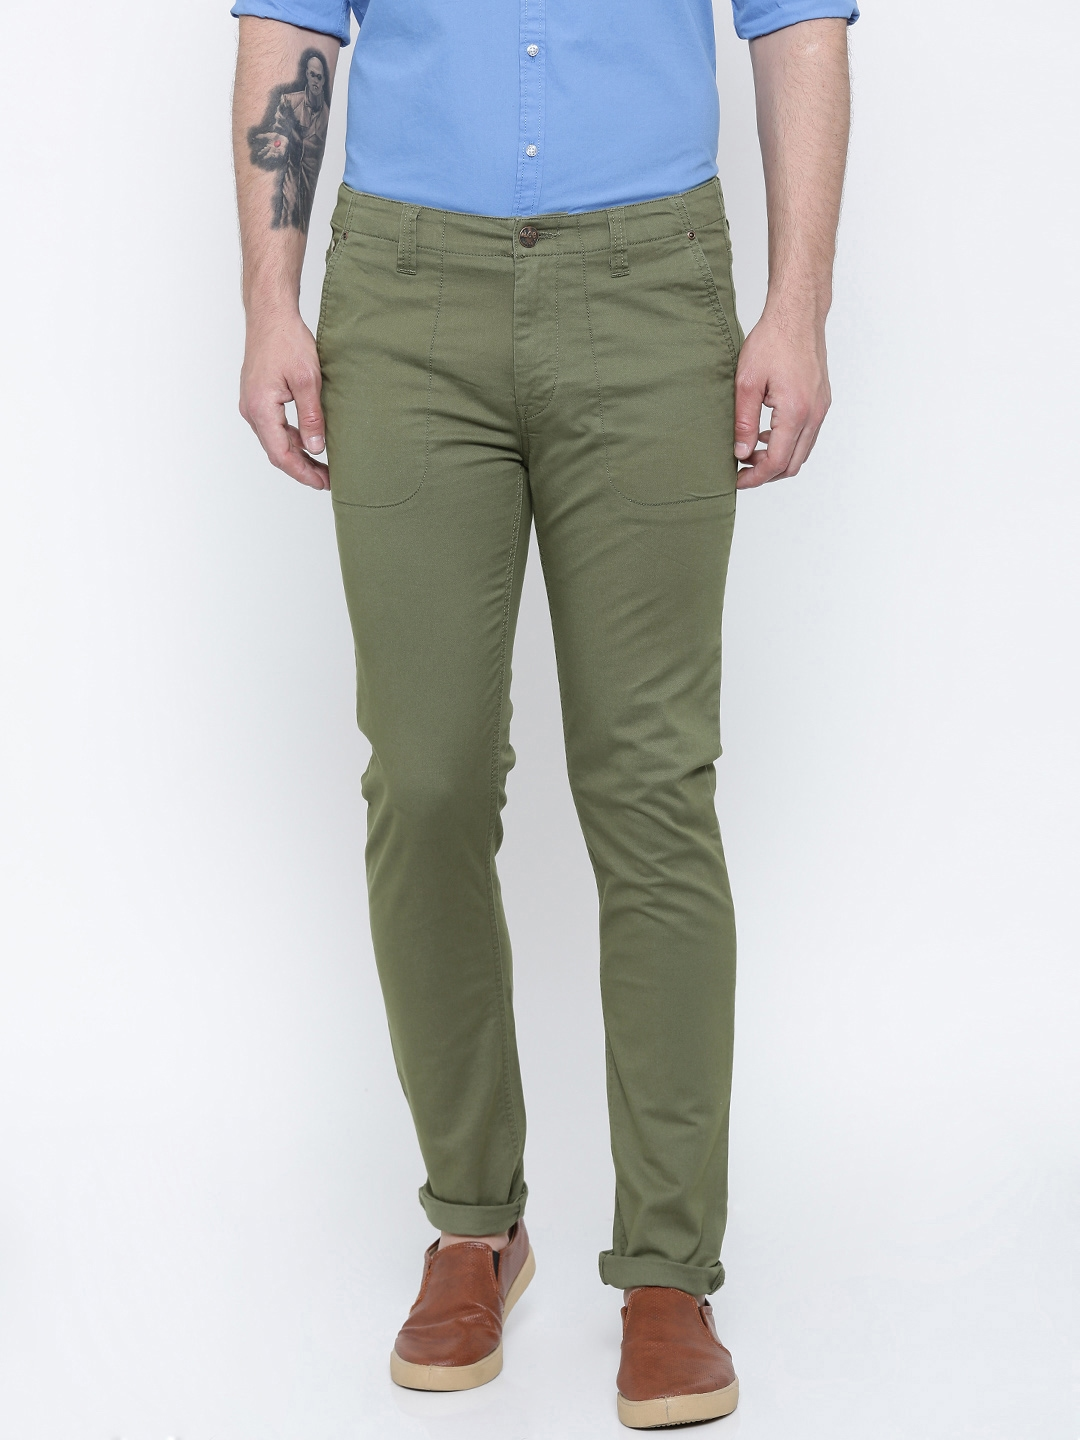 799178f6 Buy Lee Men Olive Green Slim Fit Solid Chino Trousers - Trousers for ...